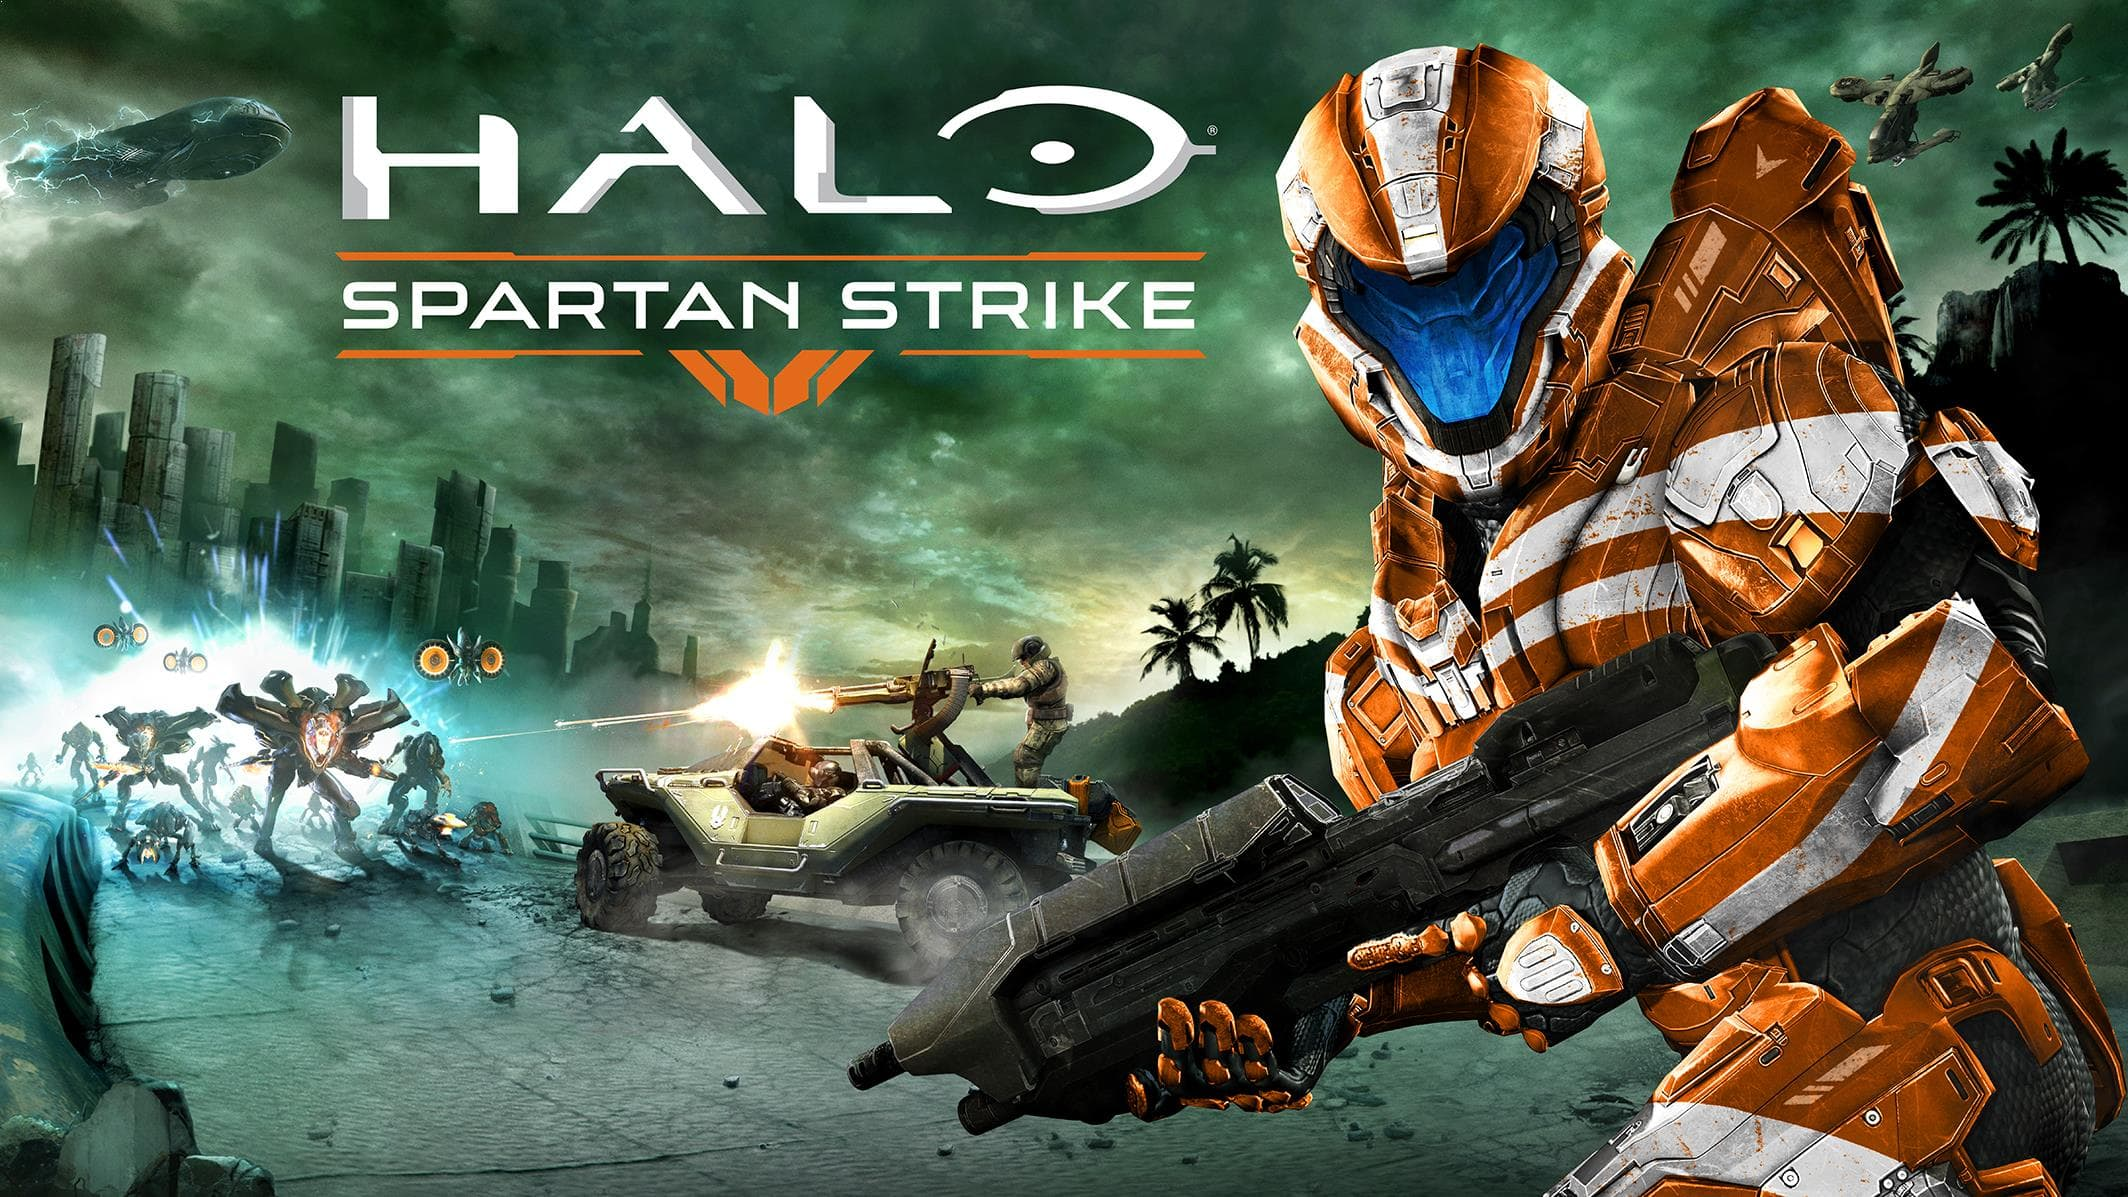 Halo Spartan Strike for Windows 10